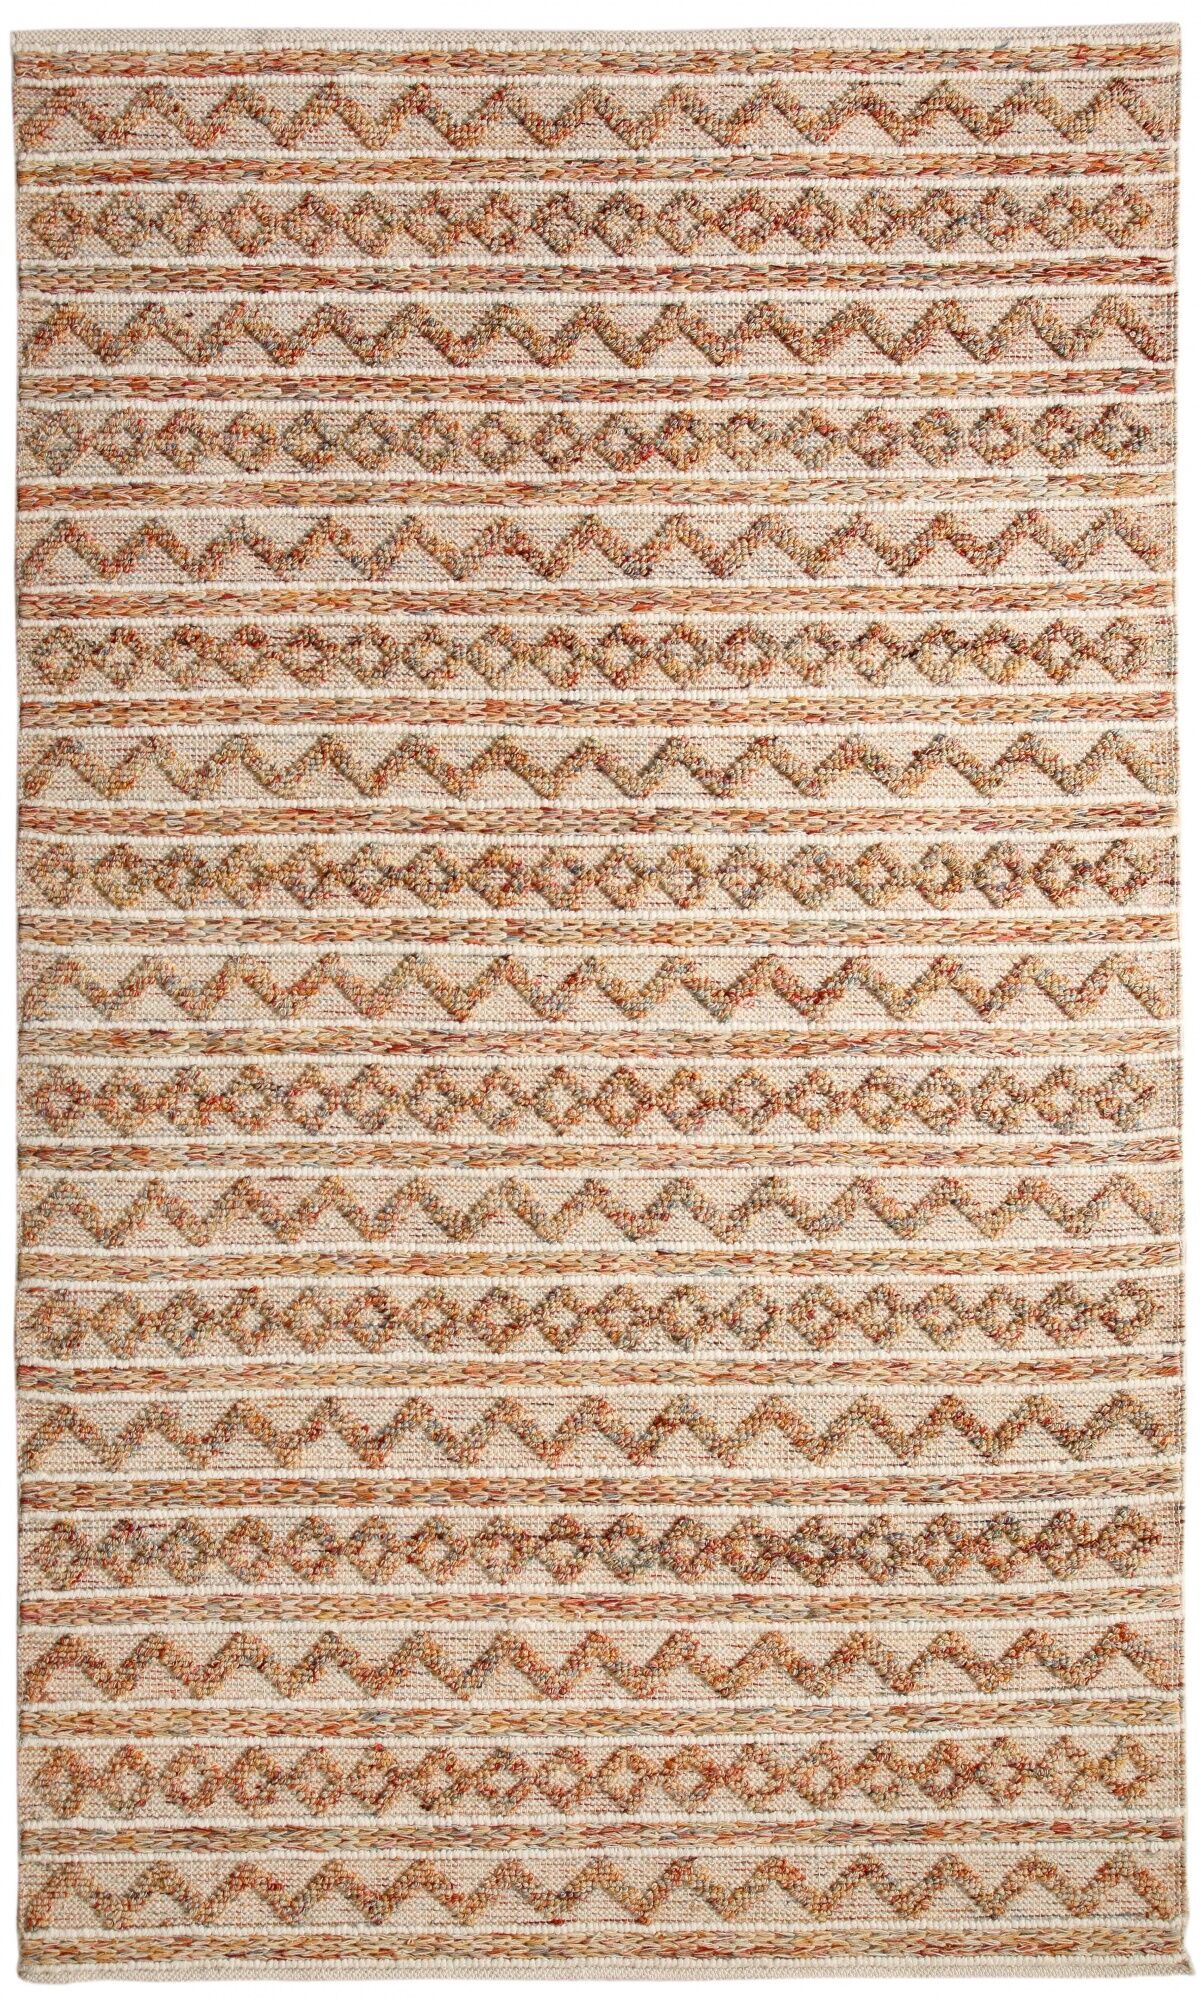 Edwa Hand-Woven Ivory Area Rug Rug Size: Rectangle 5' x 8'